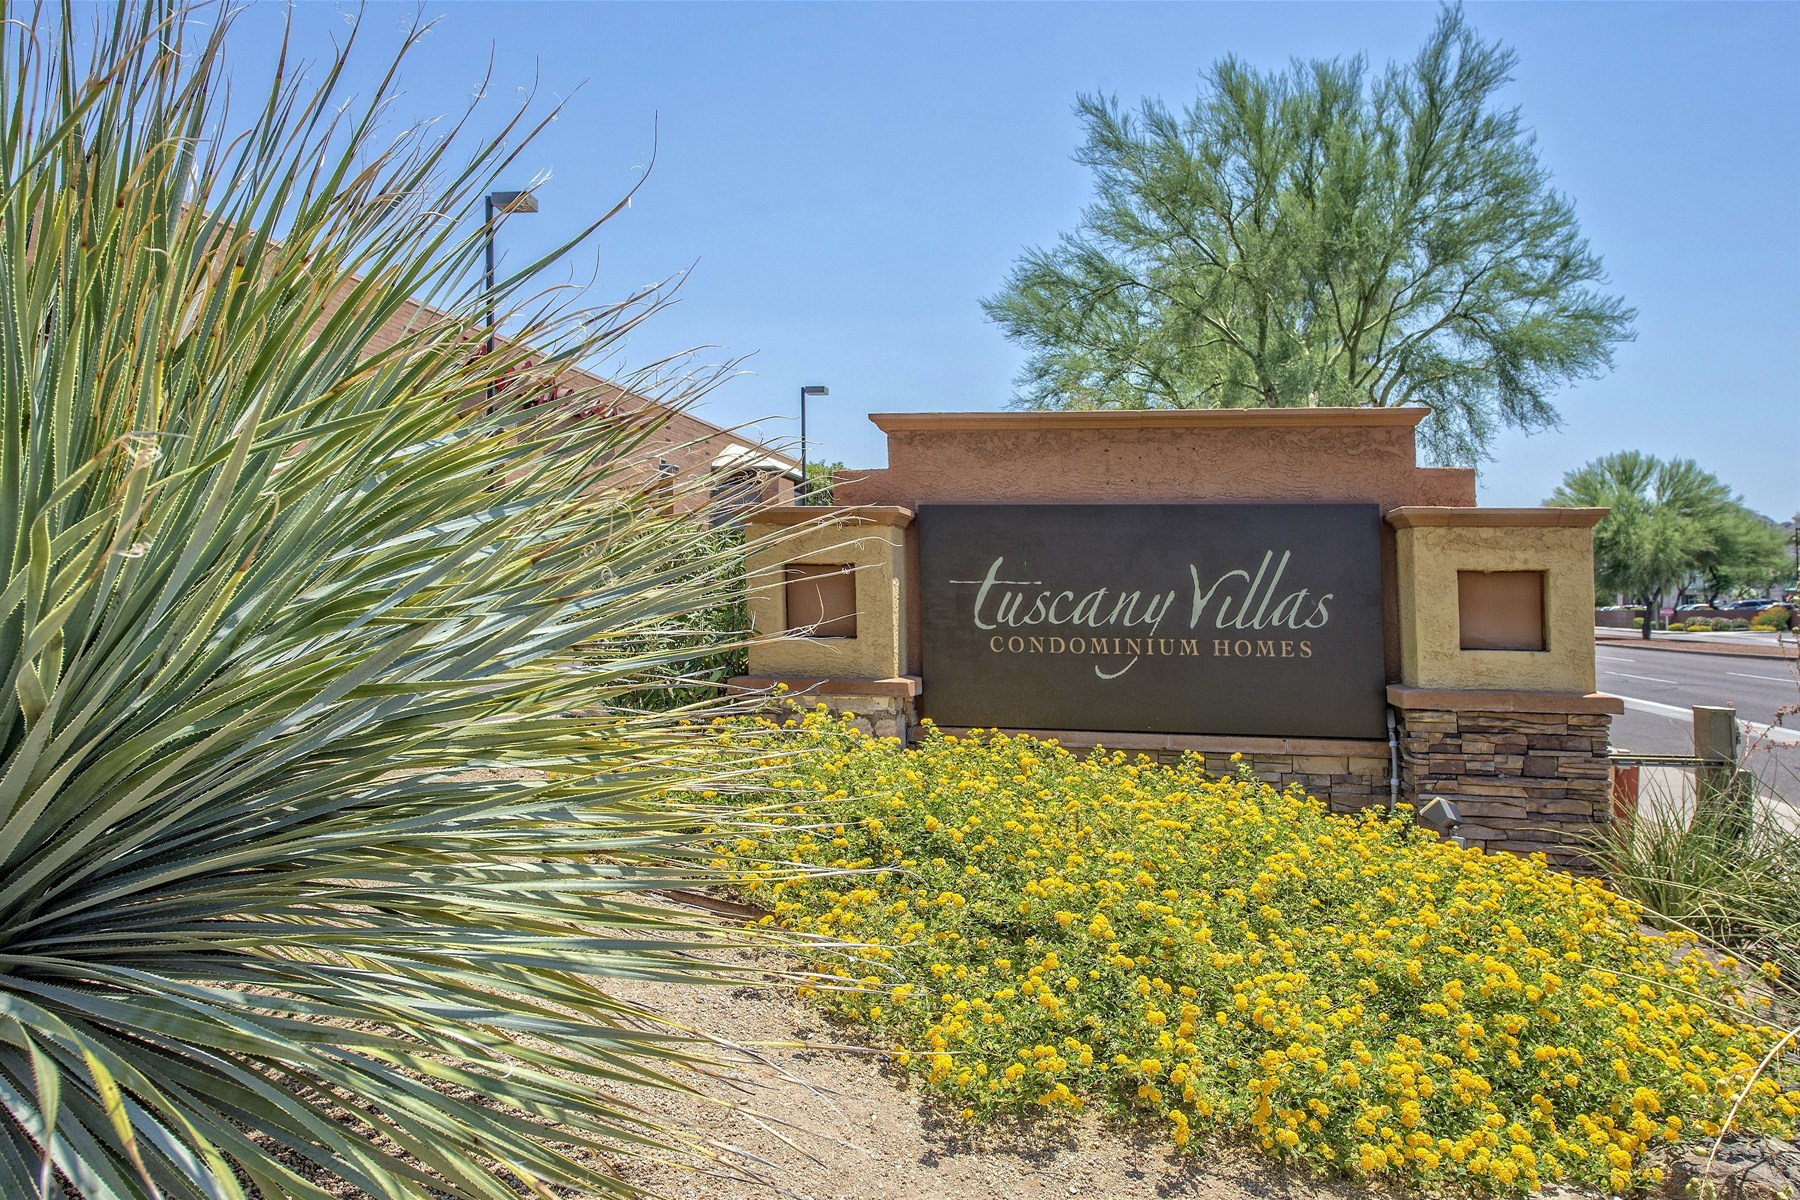 Apartment for Sale at The only two bedroom unit available and the best location in complex. 4925 E DESERT COVE AVE 133 Scottsdale, Arizona 85254 United States